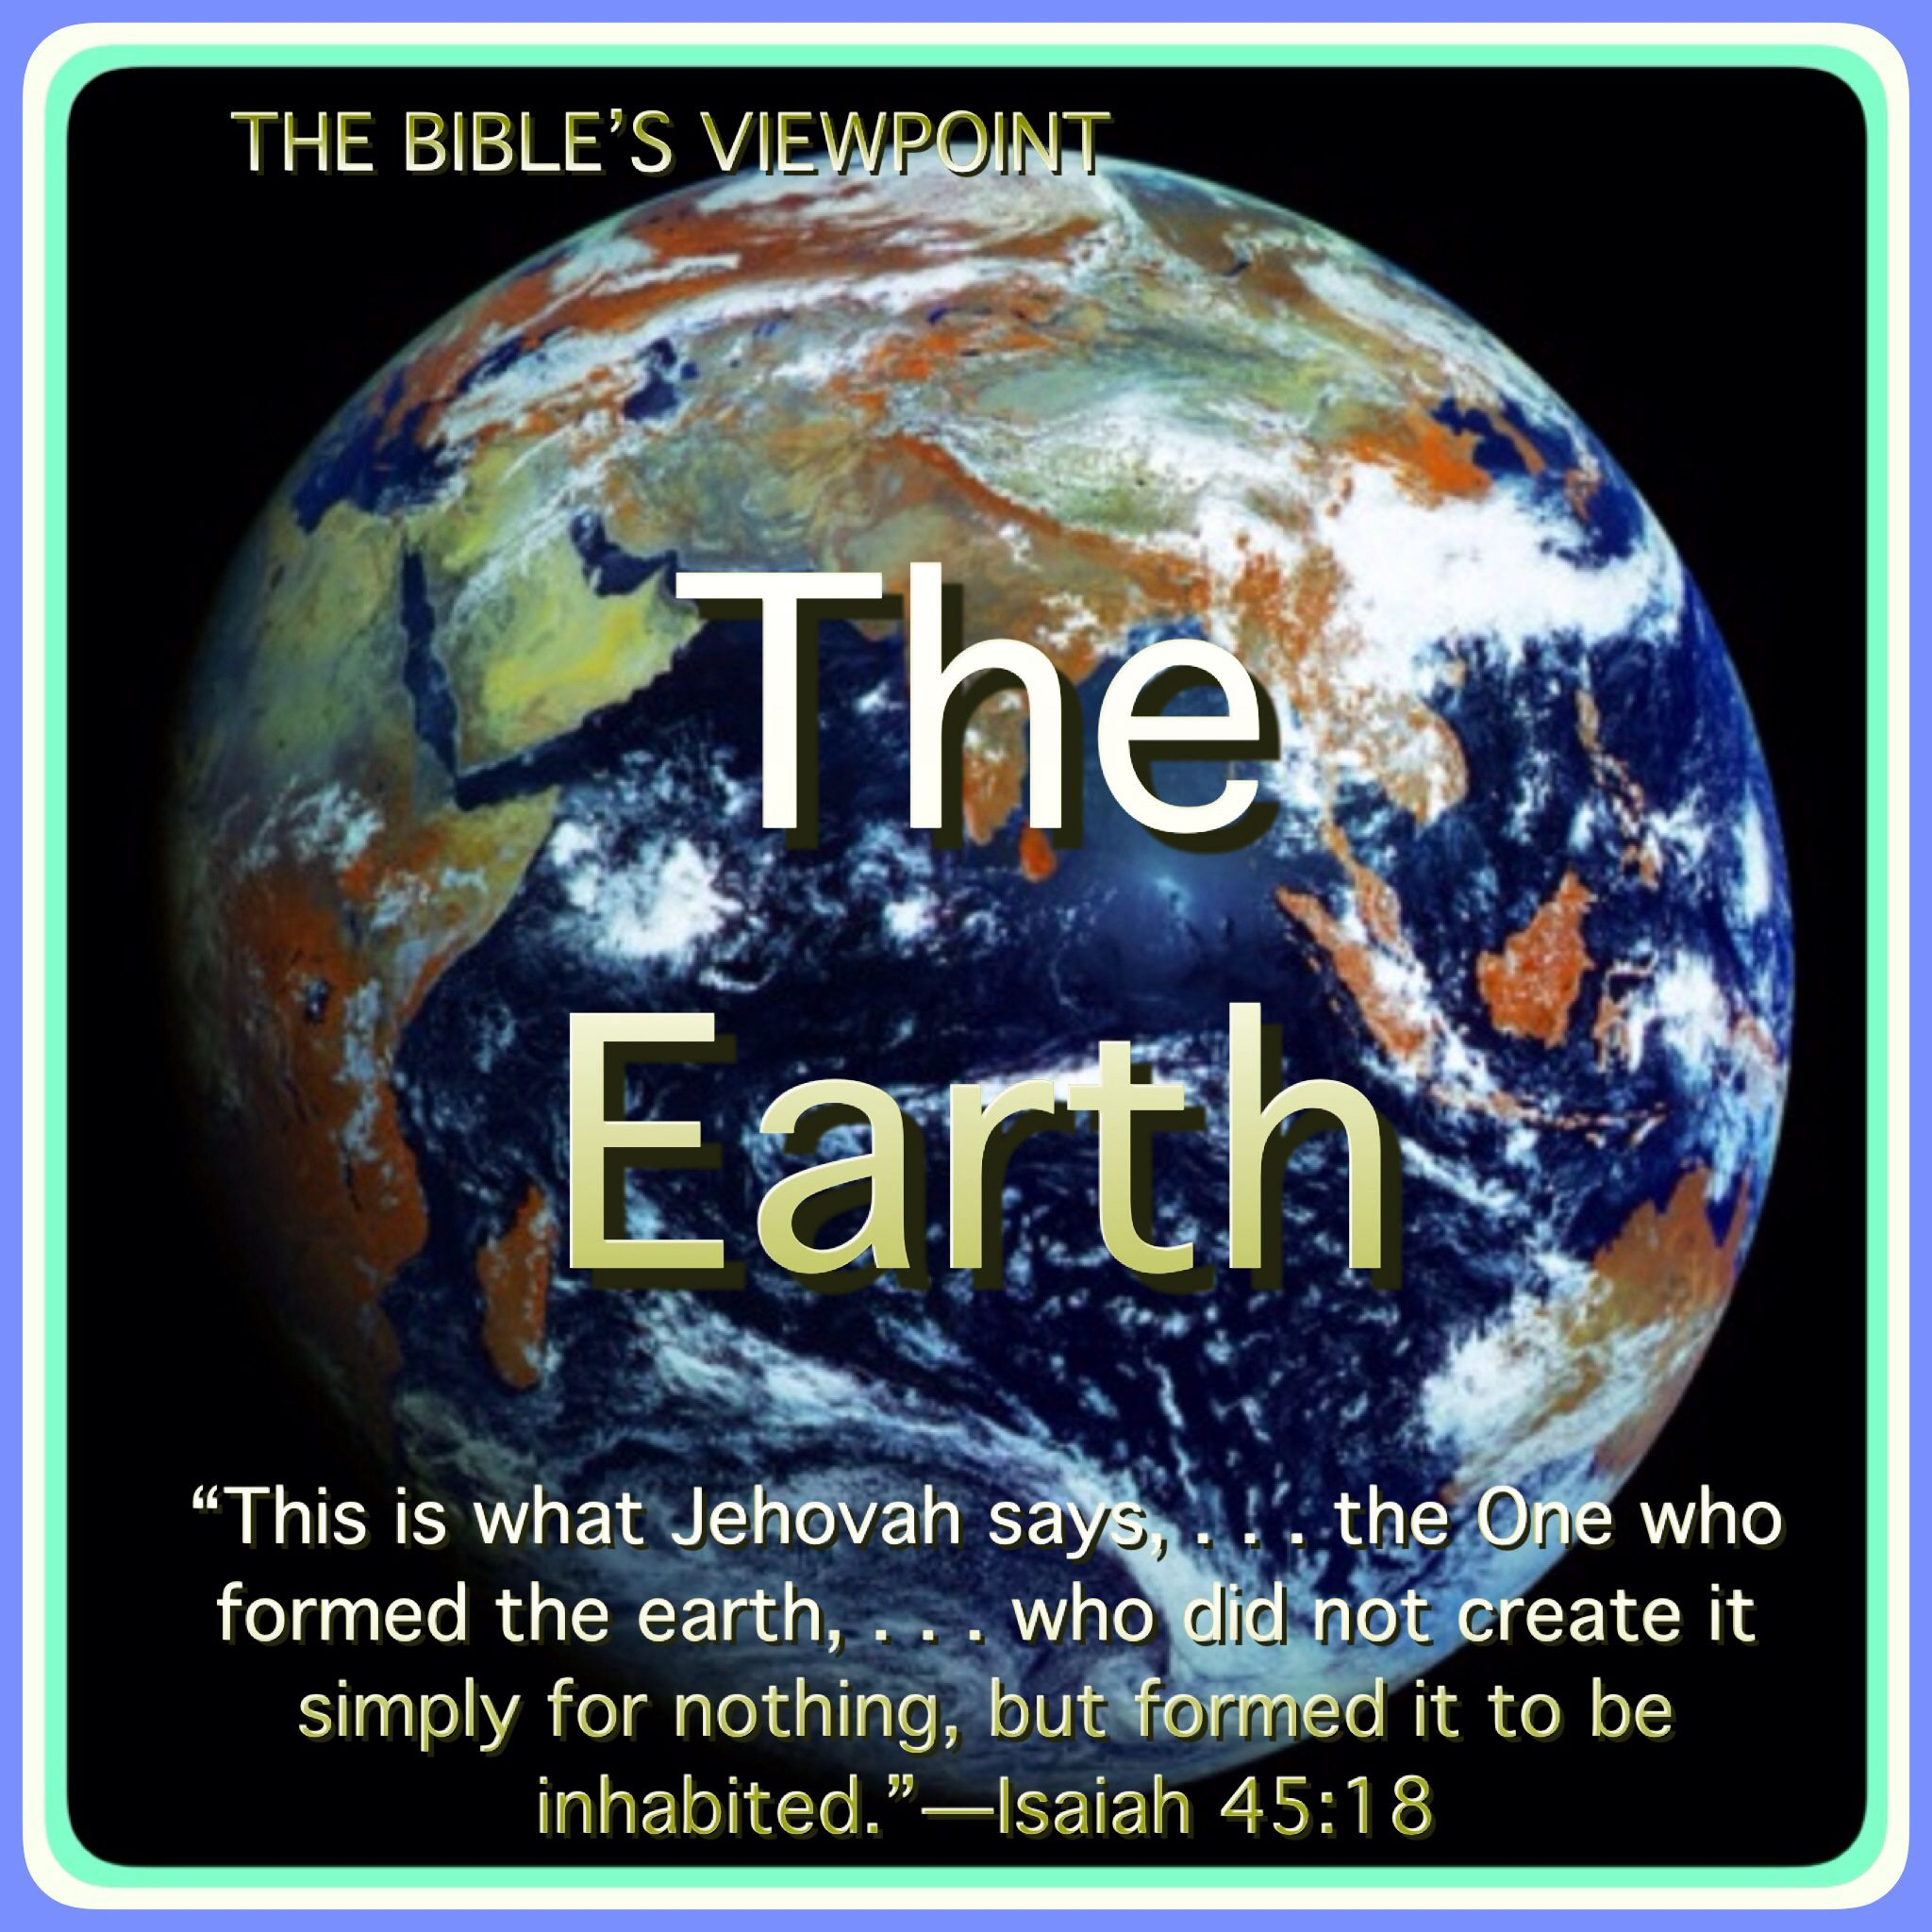 The Earth Will The Earth Be Destroyed What Is God S Purpose For The Earth Jw Org Publications Magazi Bible Based Study Jehovah Bible Knowledge